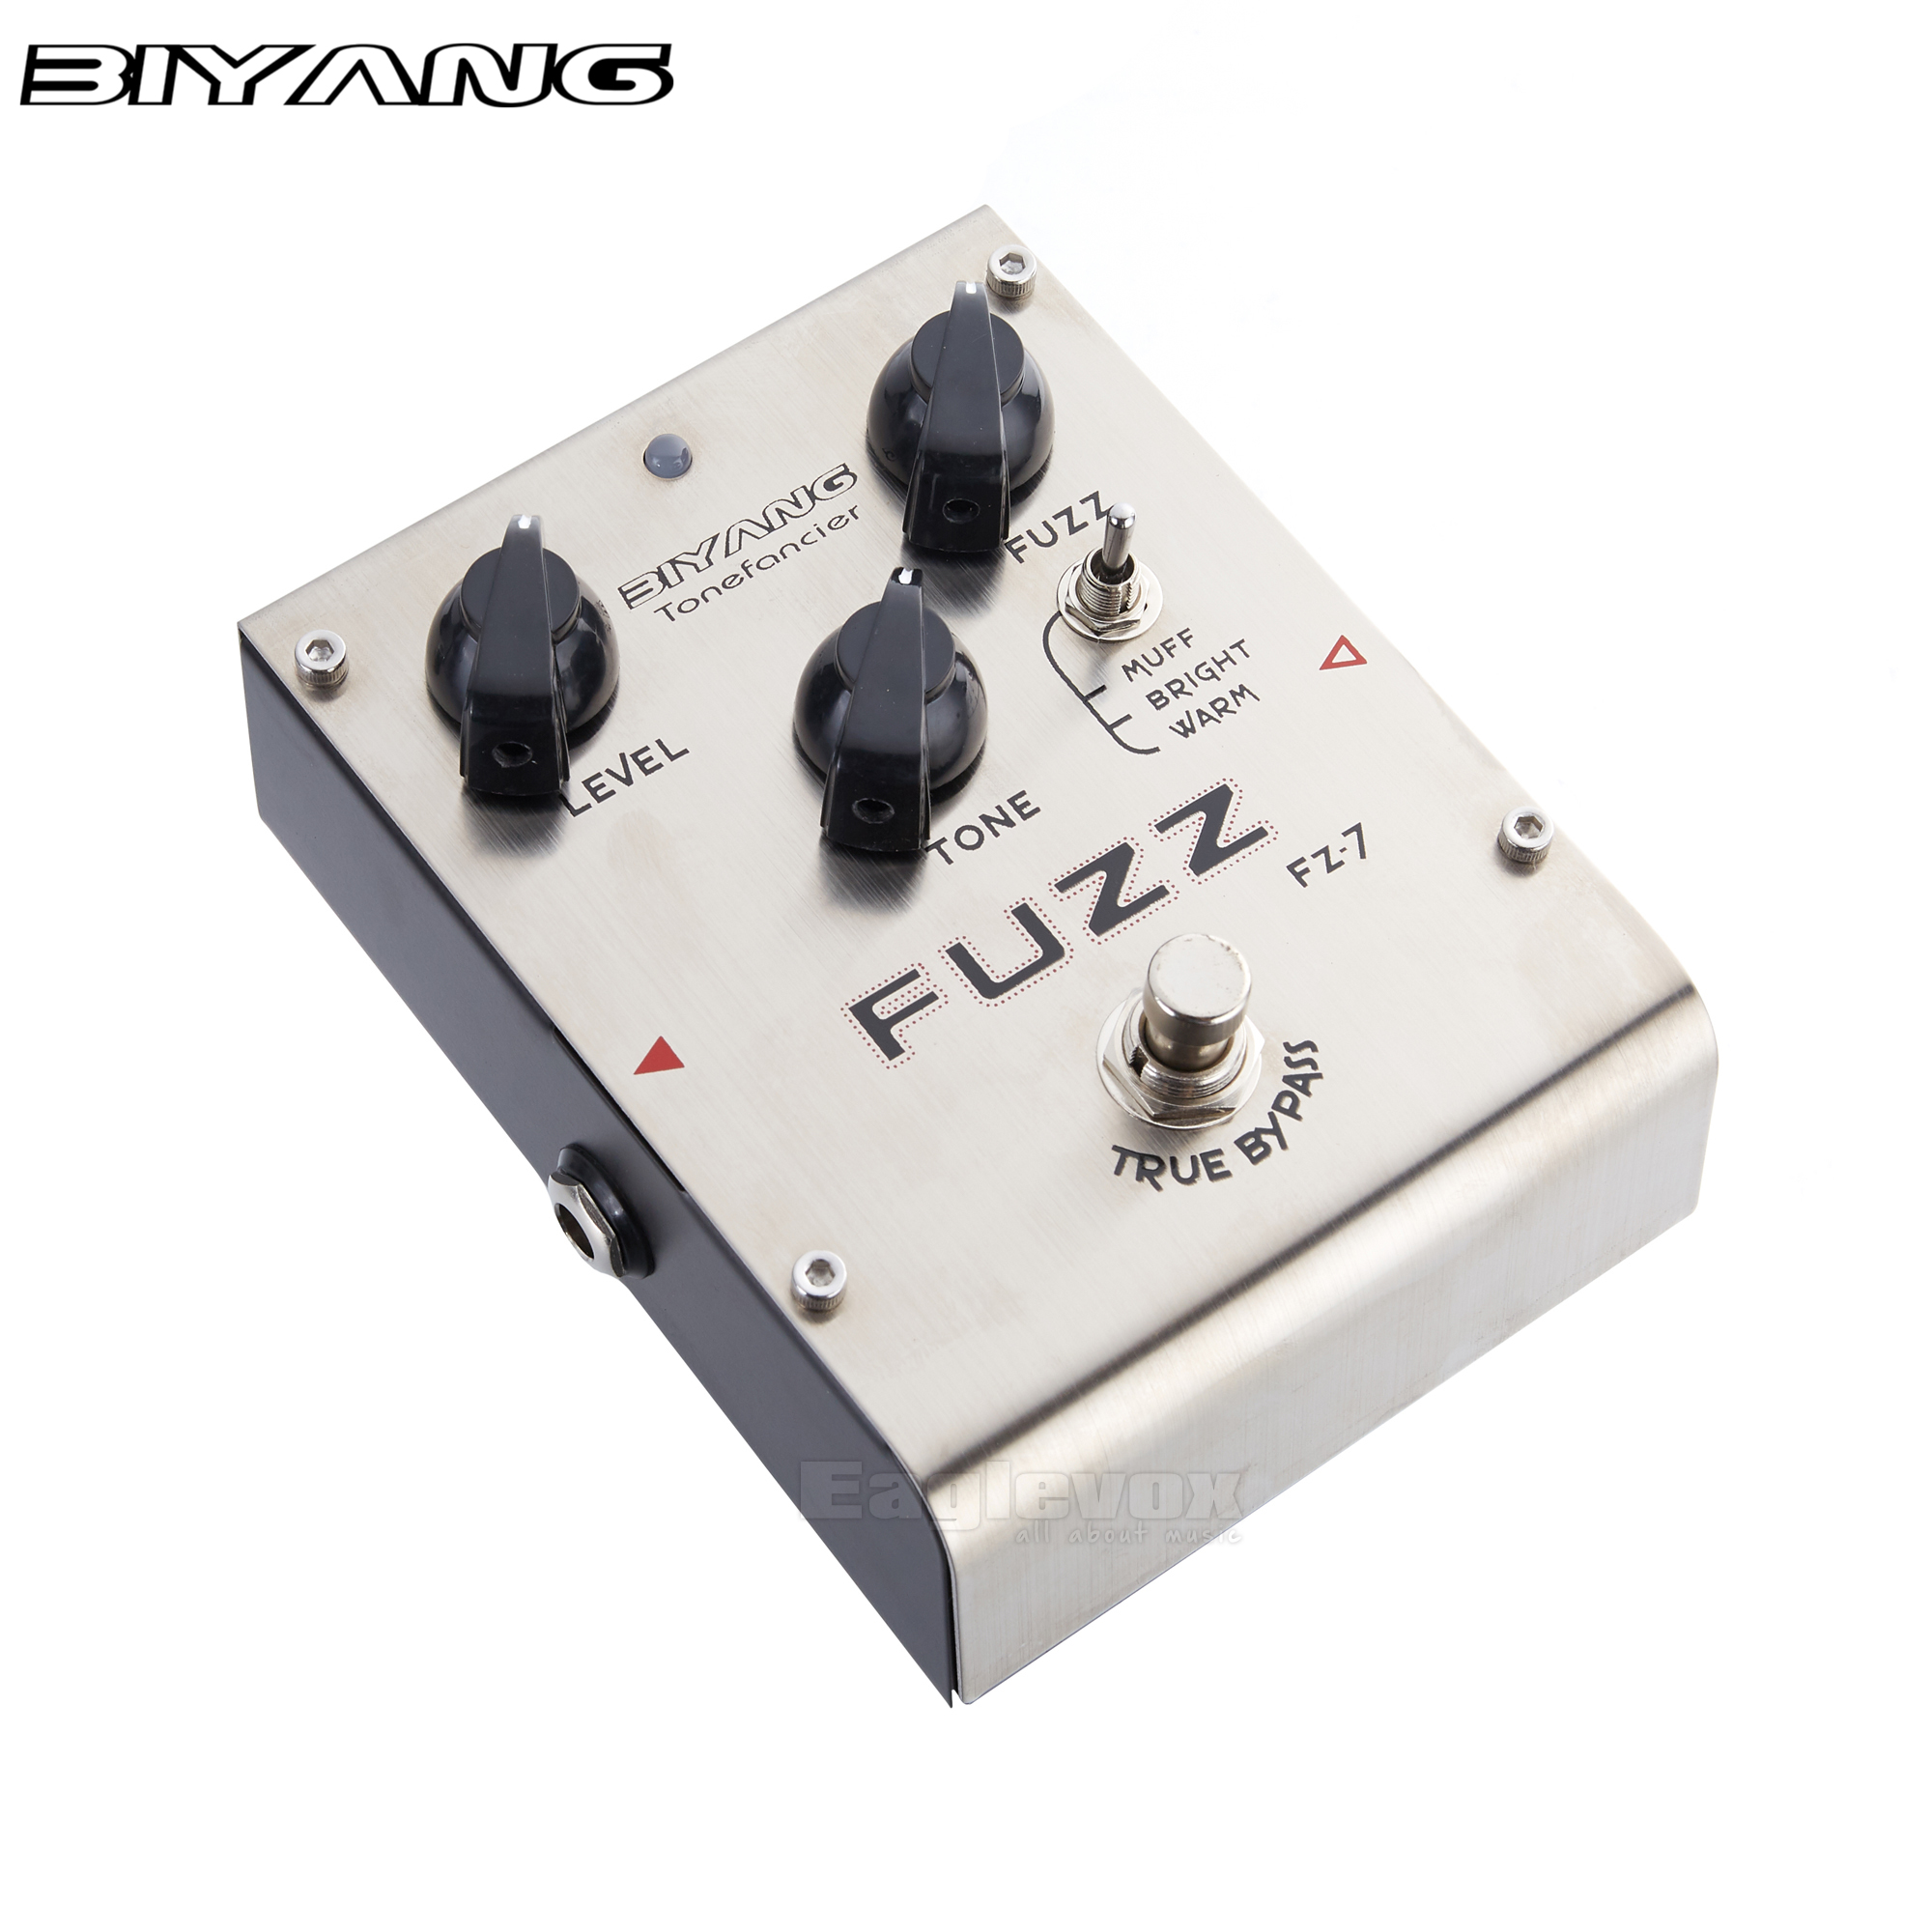 Biyang Fuzz Guitar Effect Pedal Combination Vintage and Modern Distortion Sound Effects Stompbox for Electric Guitar FZ-7 biyang baby boom fz 10 electric guitar effect pedal three models fuzz star distortion true bypass musical instruments